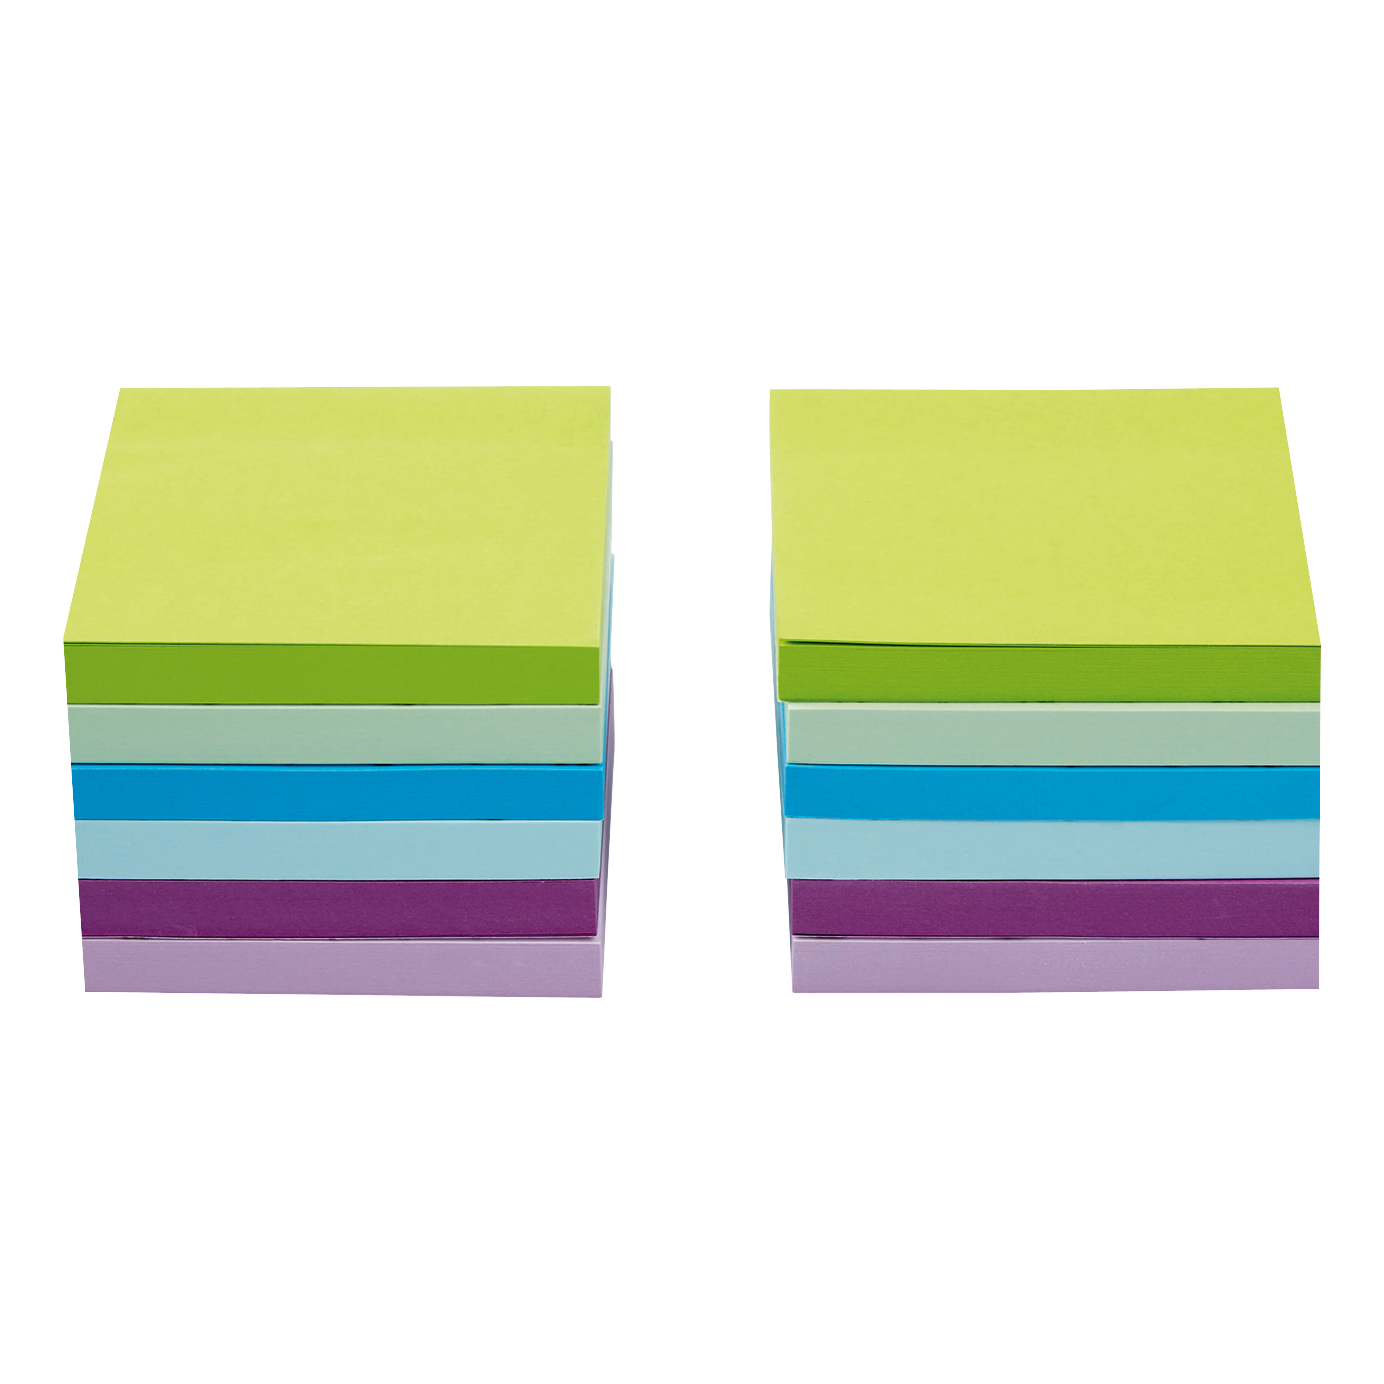 Self adhesive note paper 5 Star Office Re-Move Sticky Notes 76x76mm 6 Neon/Pastel Colours 100 Sheets per Pad Pack of 12